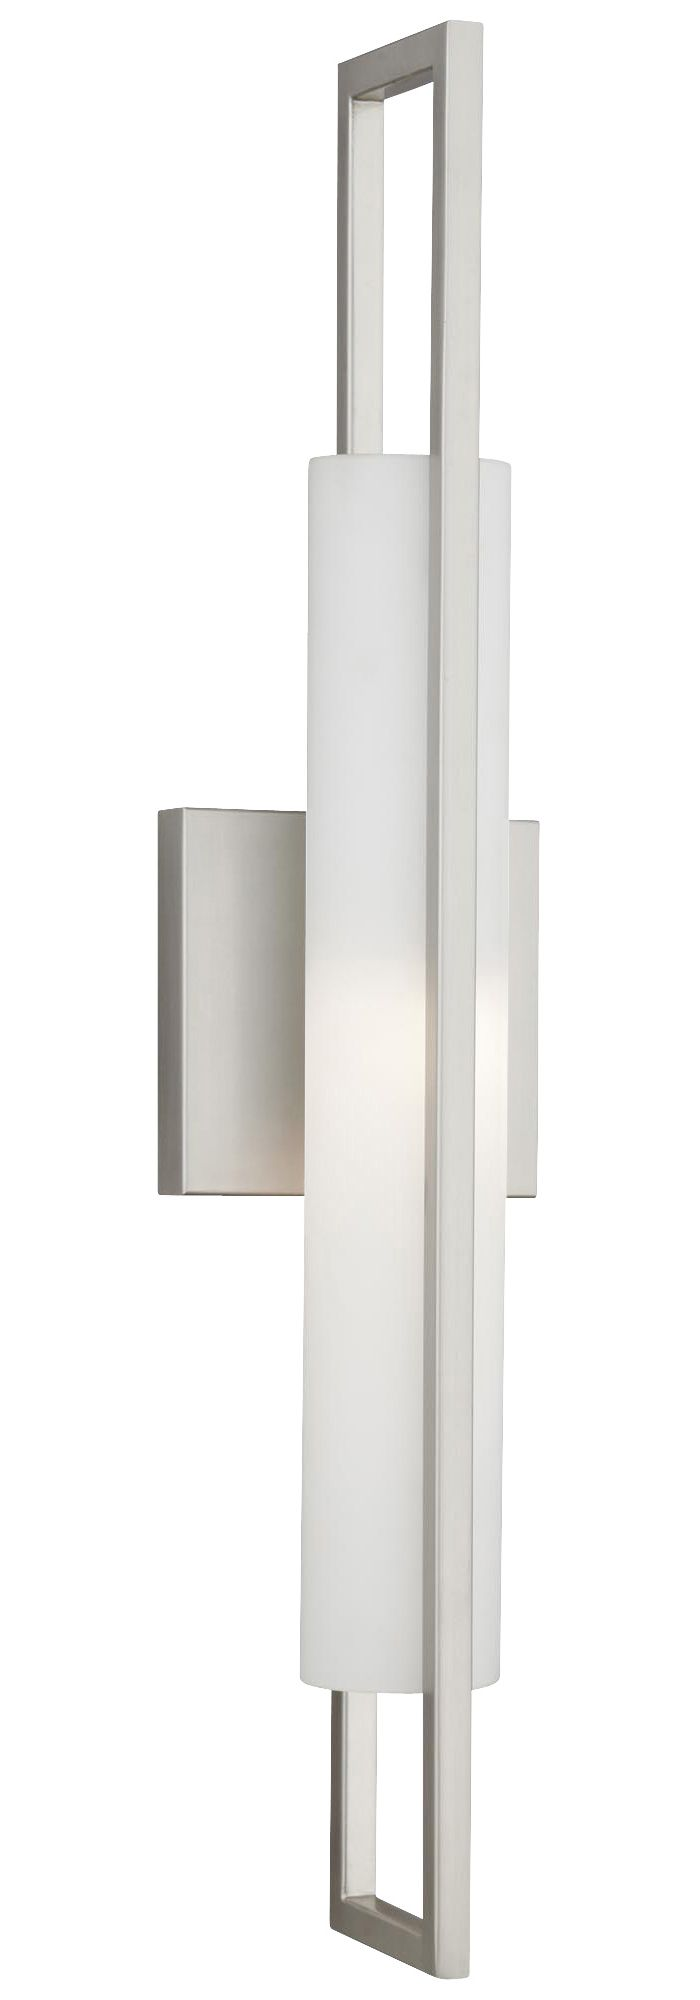 Philips Grace Wall Lights : Wall light FL0011836 Forecast